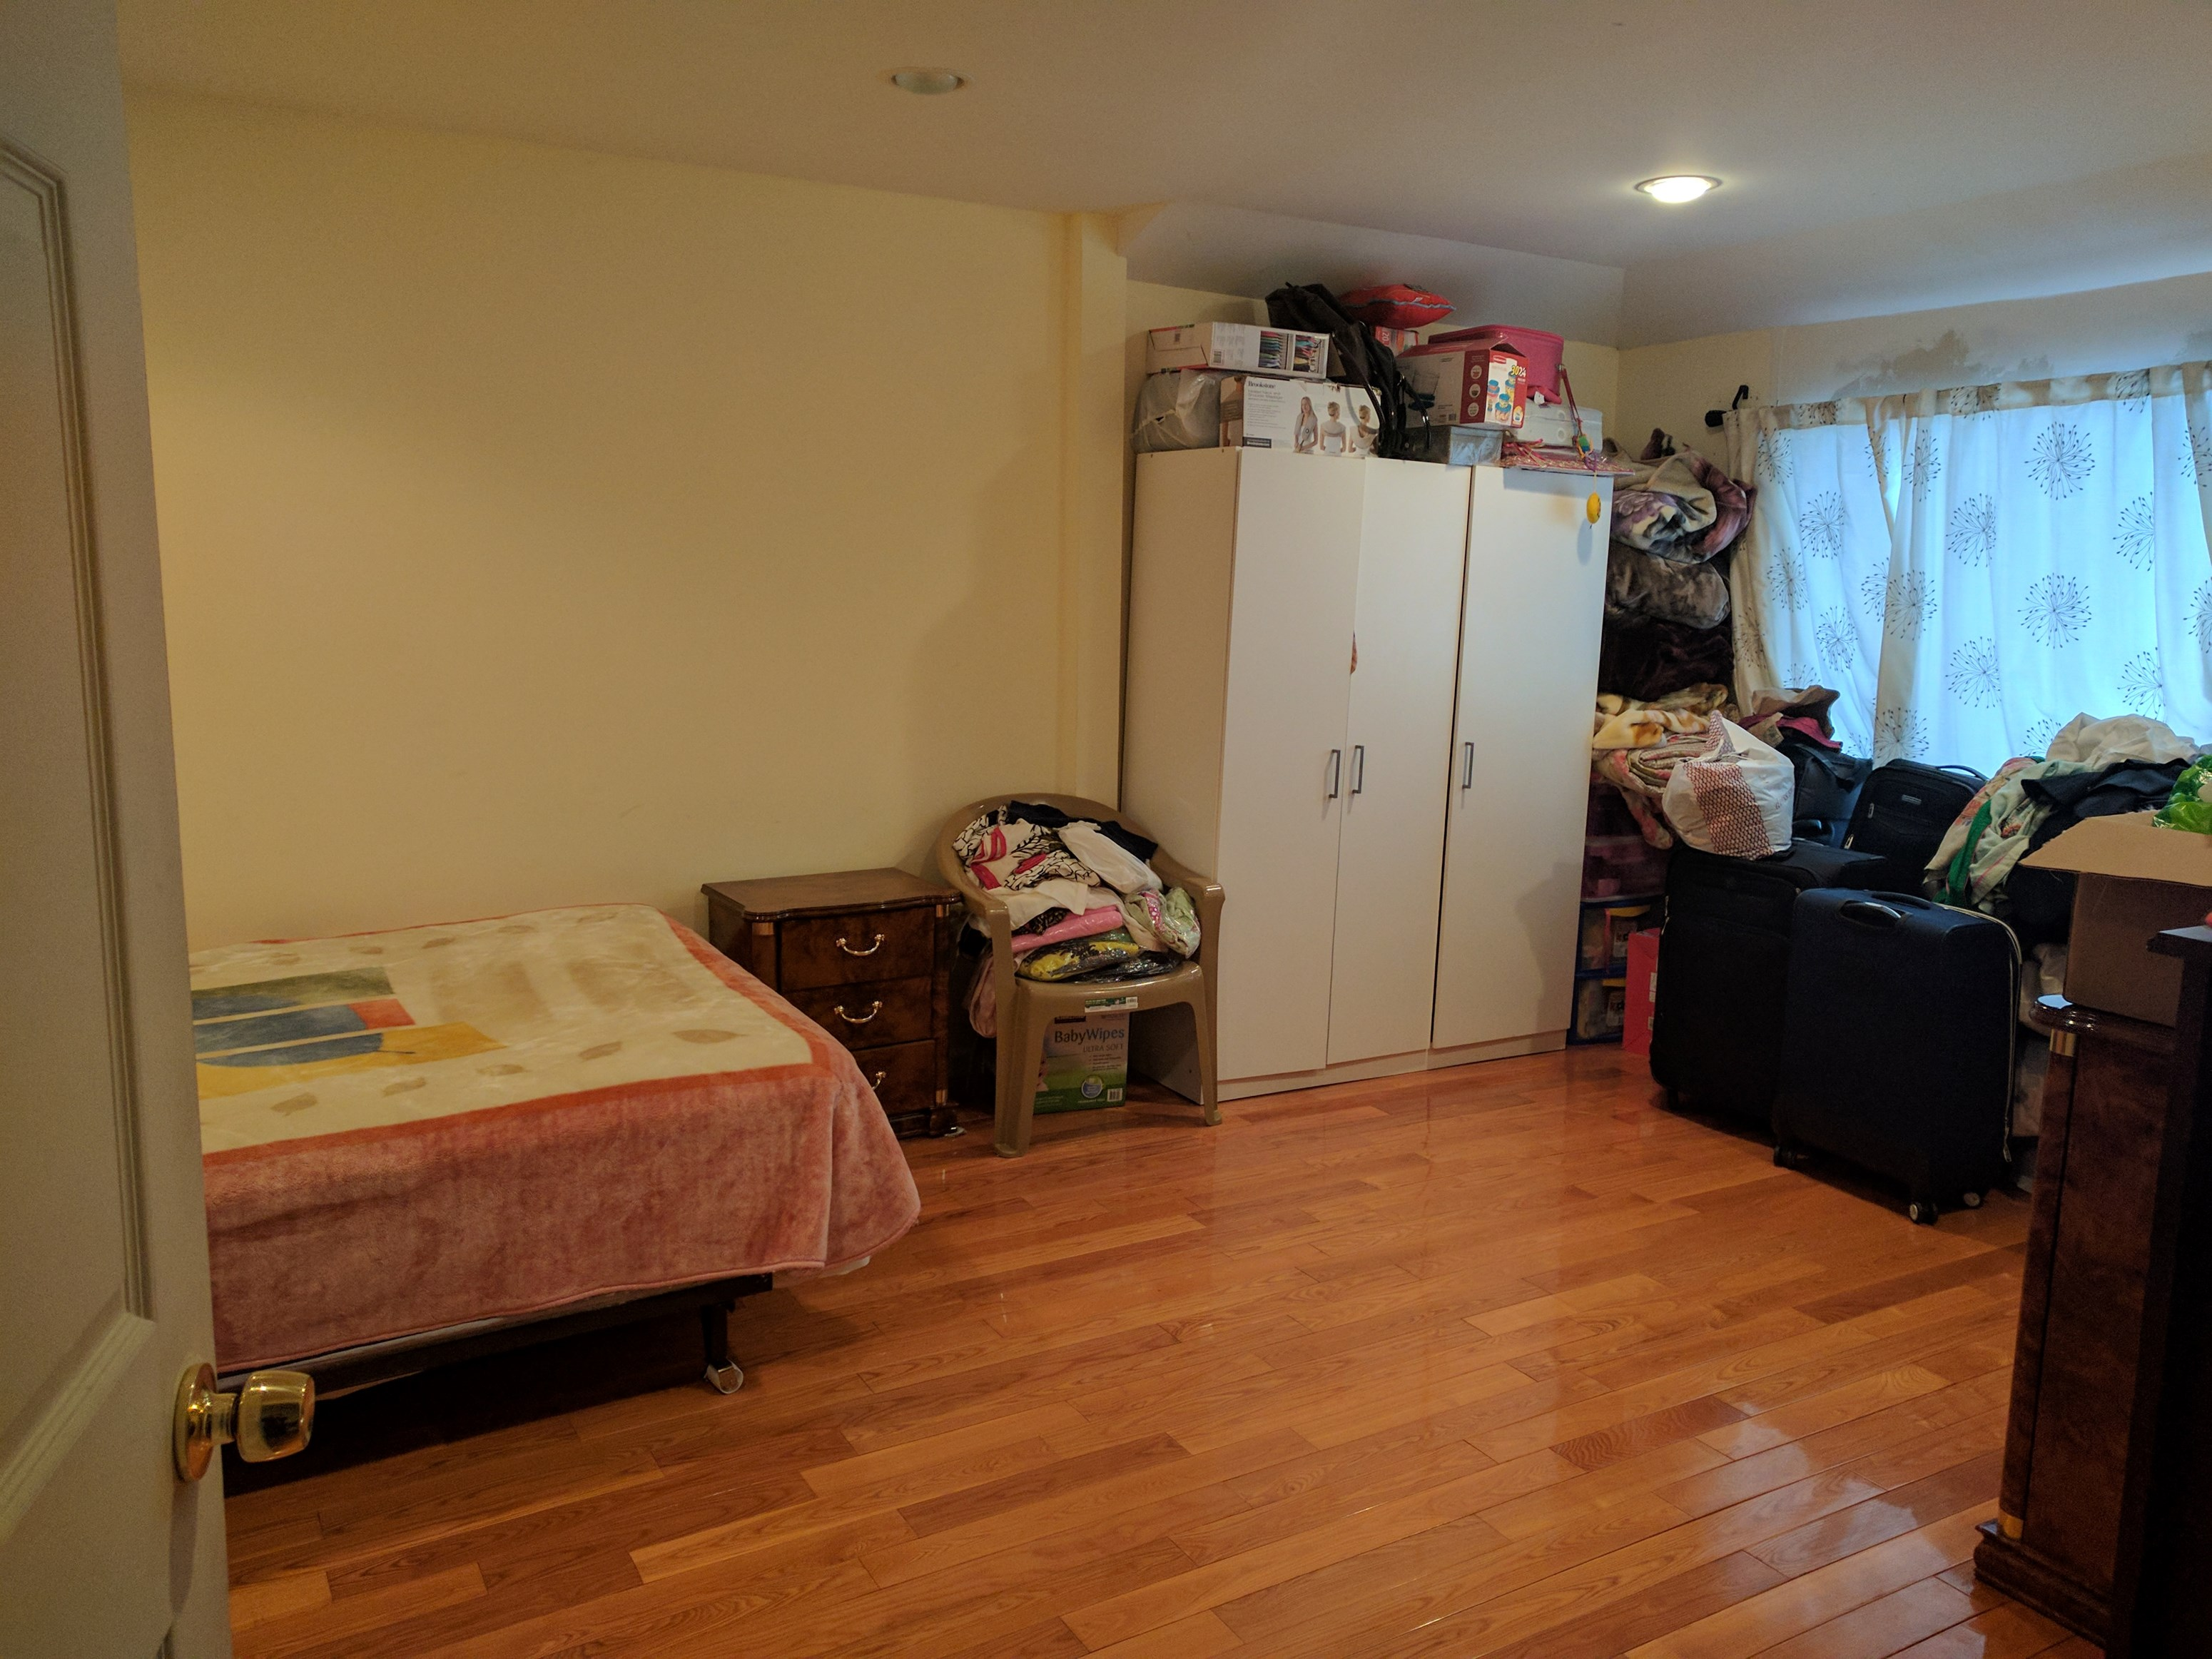 House For Rent In New York Apartments Flats Commercial Space Individual House For Rentals